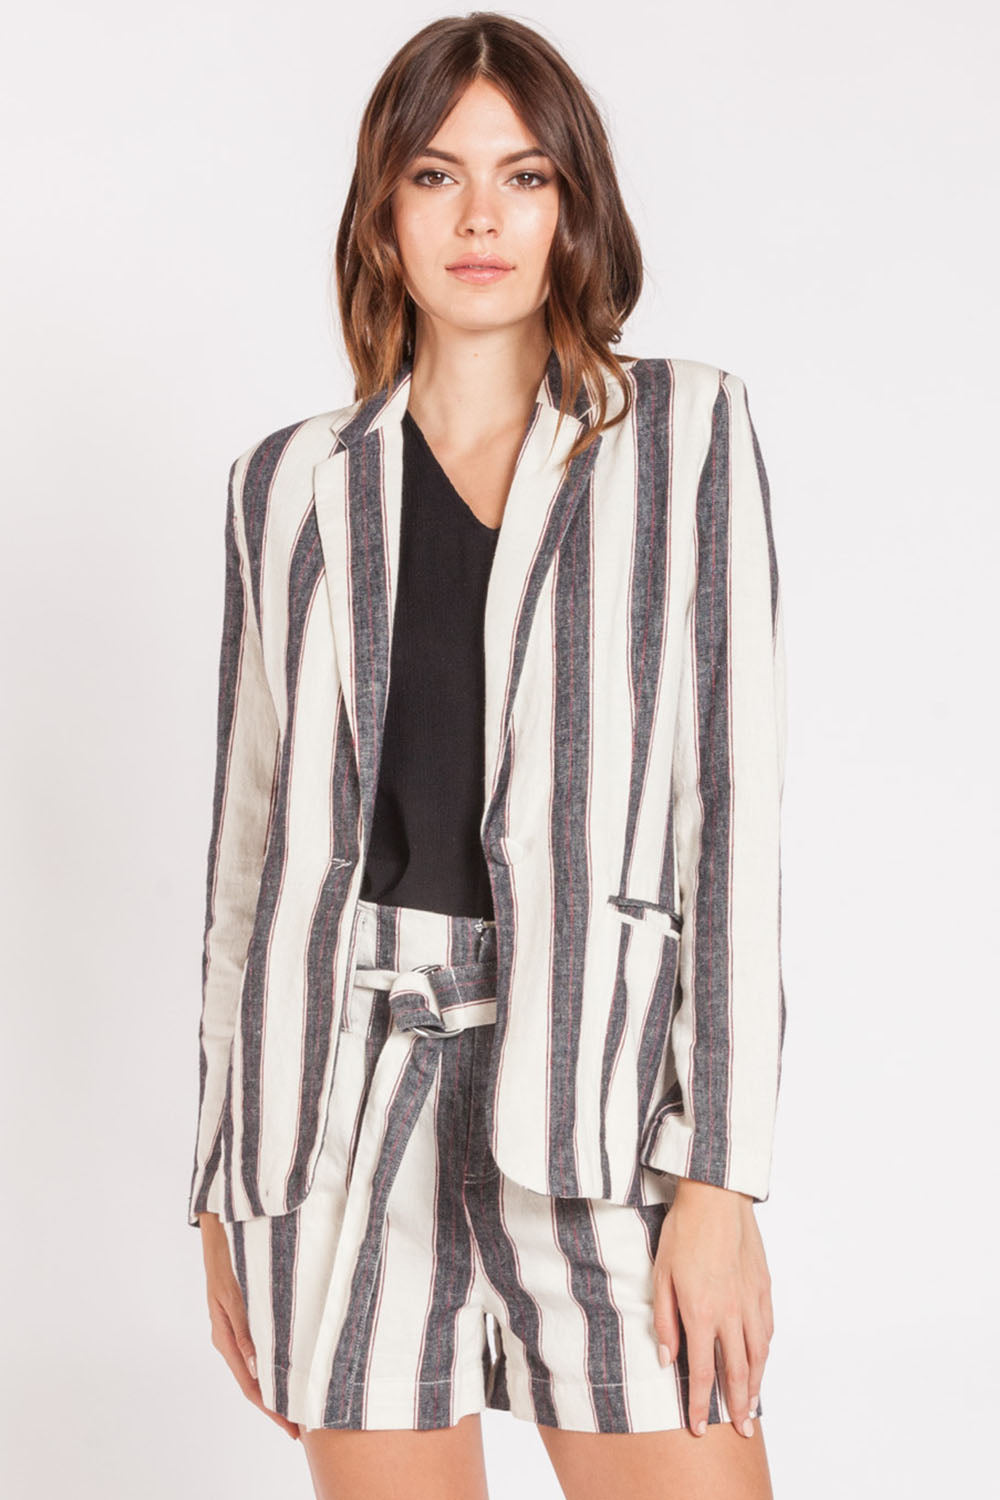 Stripped Boyfriend Linen Jacket - Nicoletaylorboutique